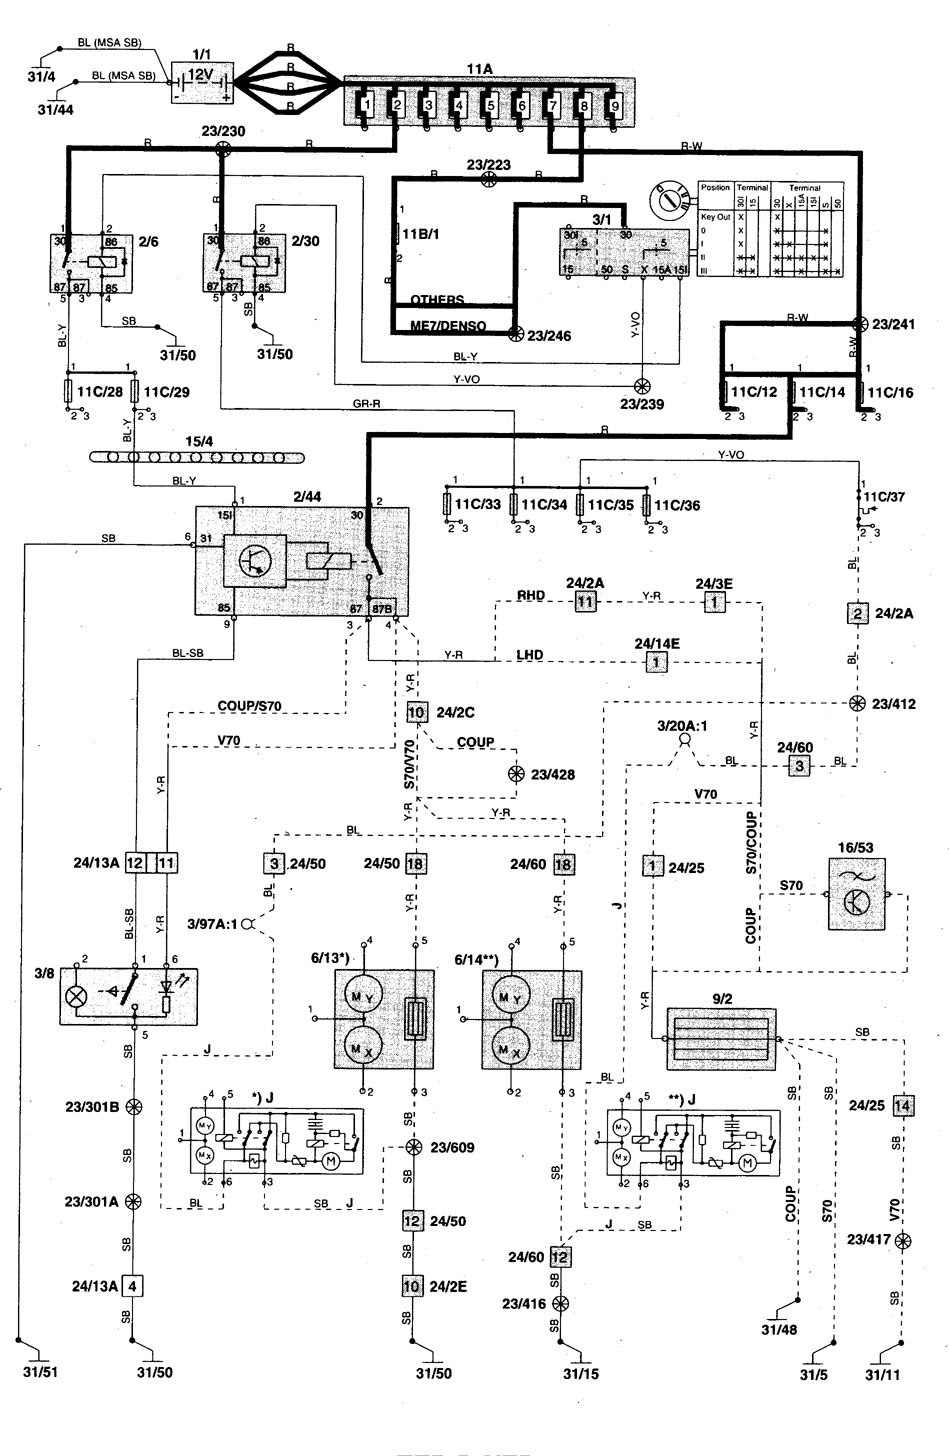 wiring diagram for 1998 v70 wiring library